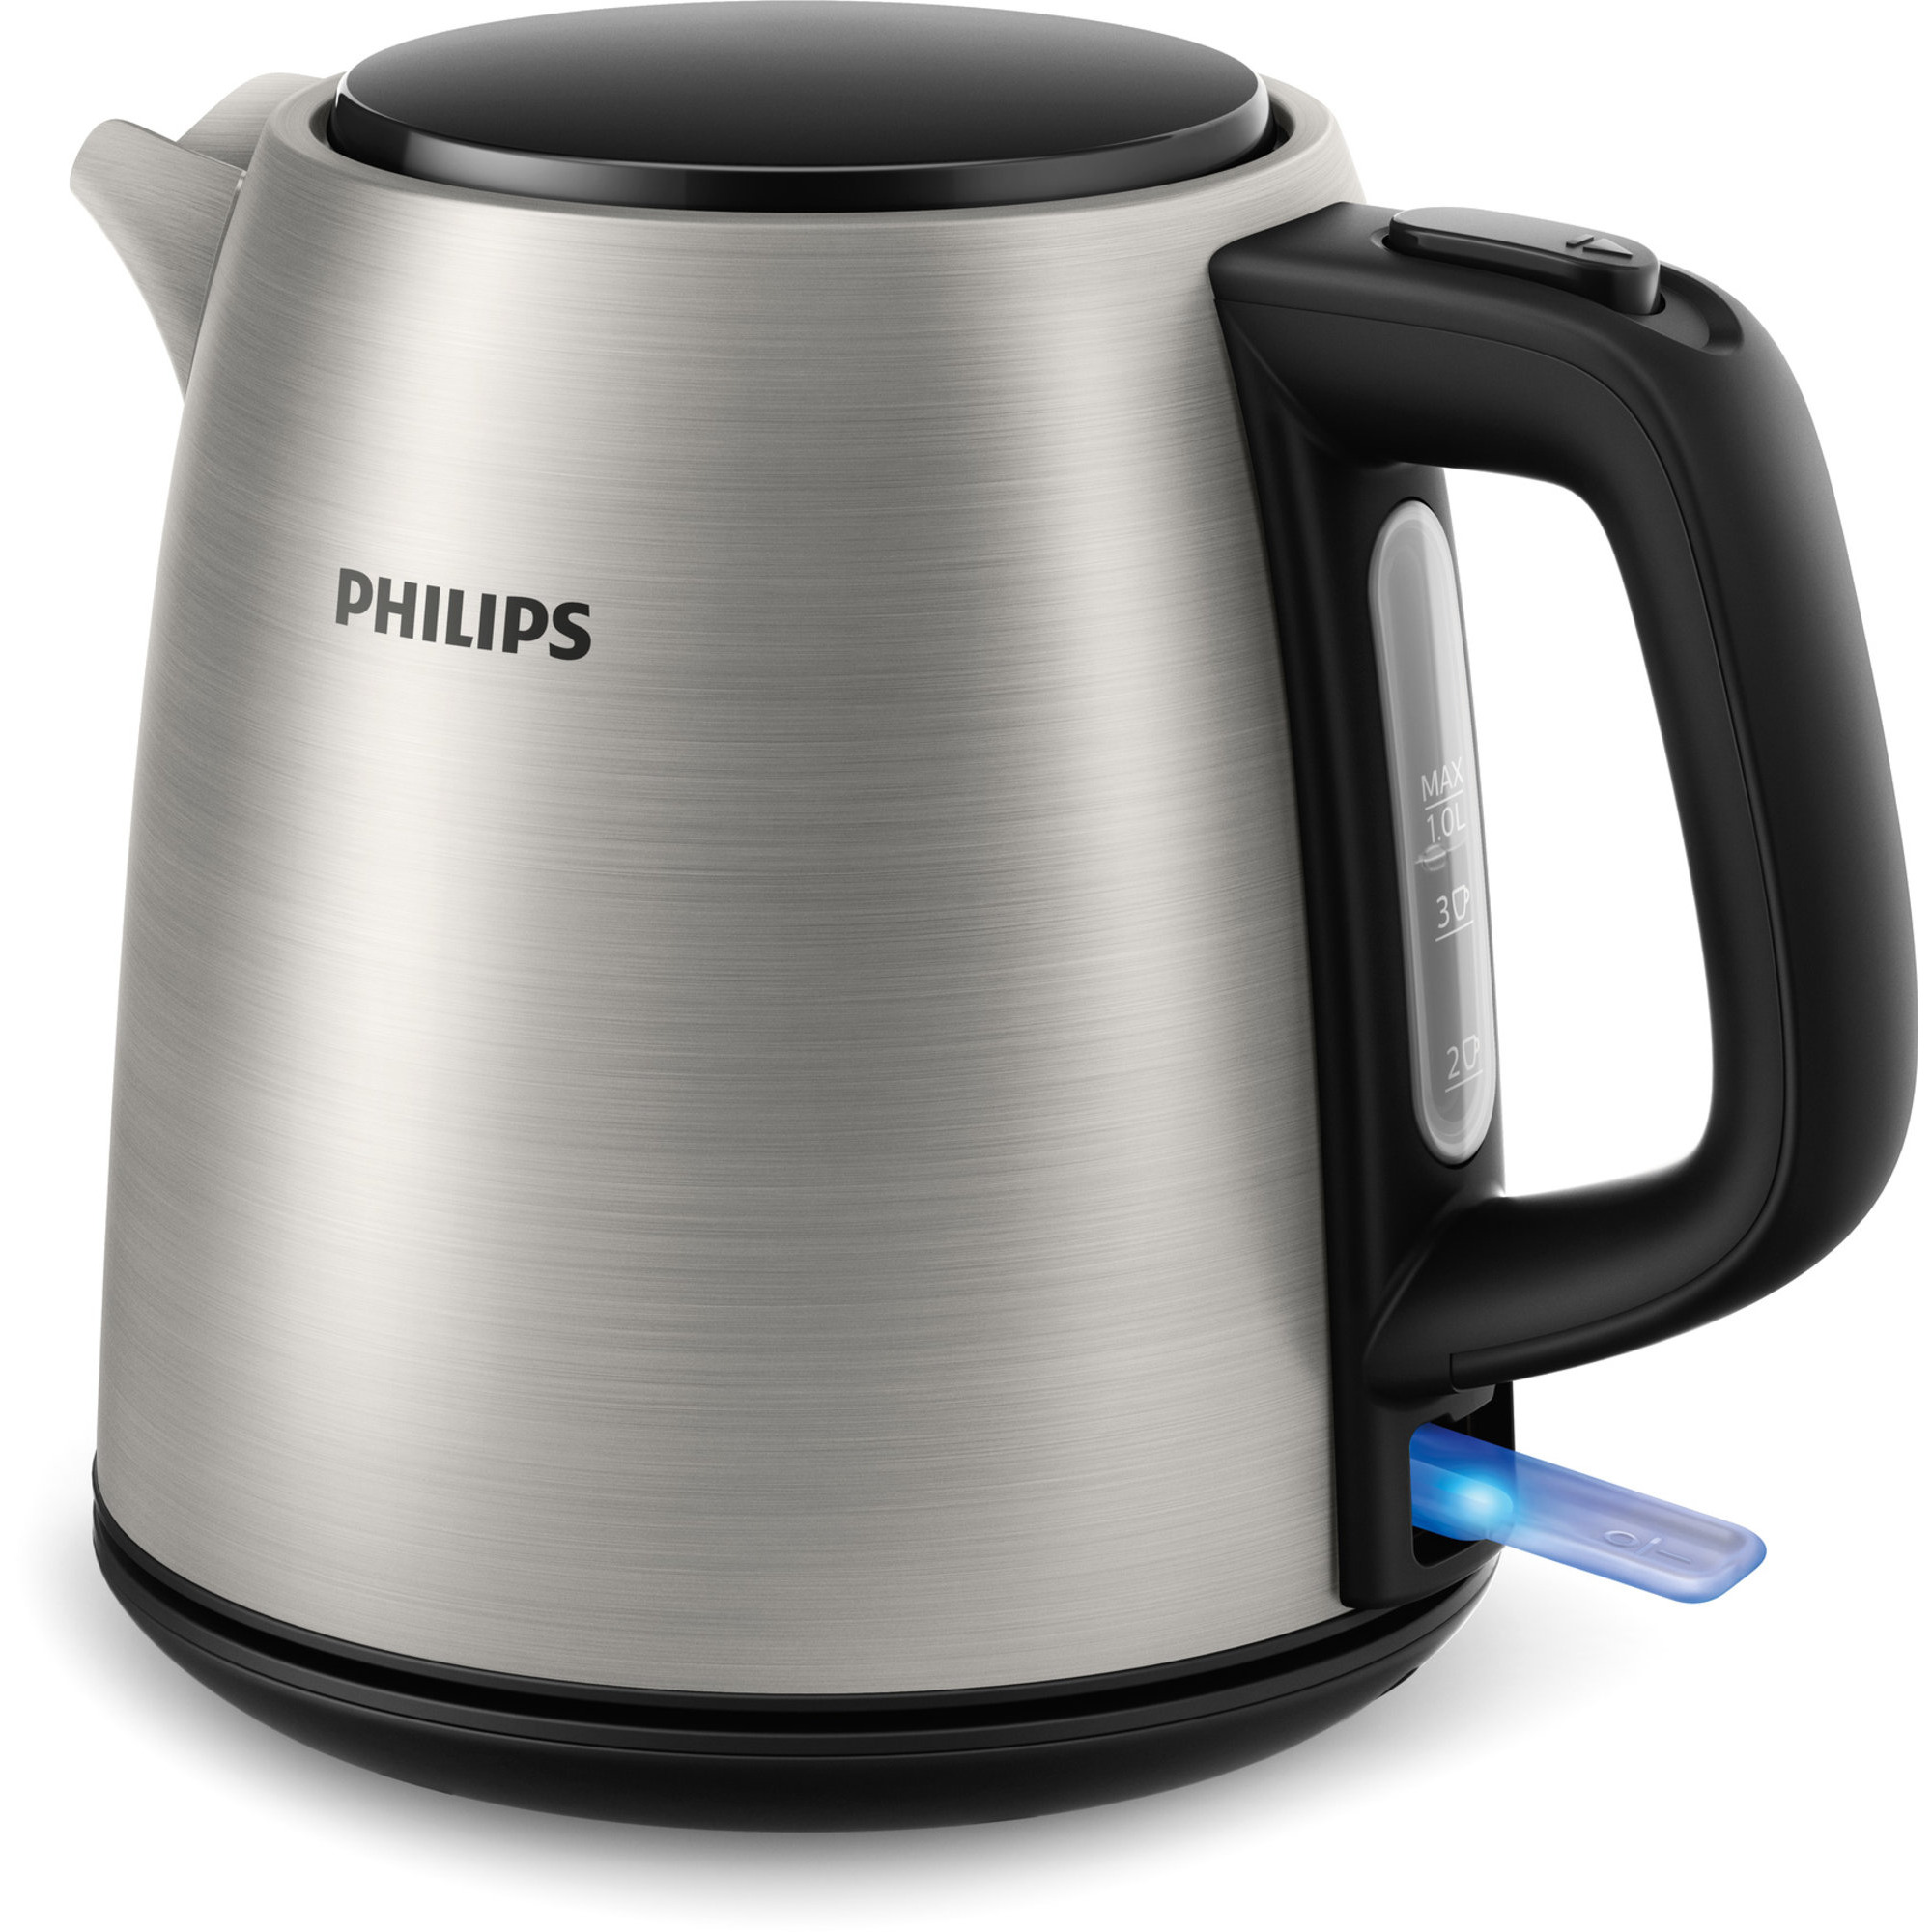 Philips HD9348/10 Vattenkokare 1 liter metall